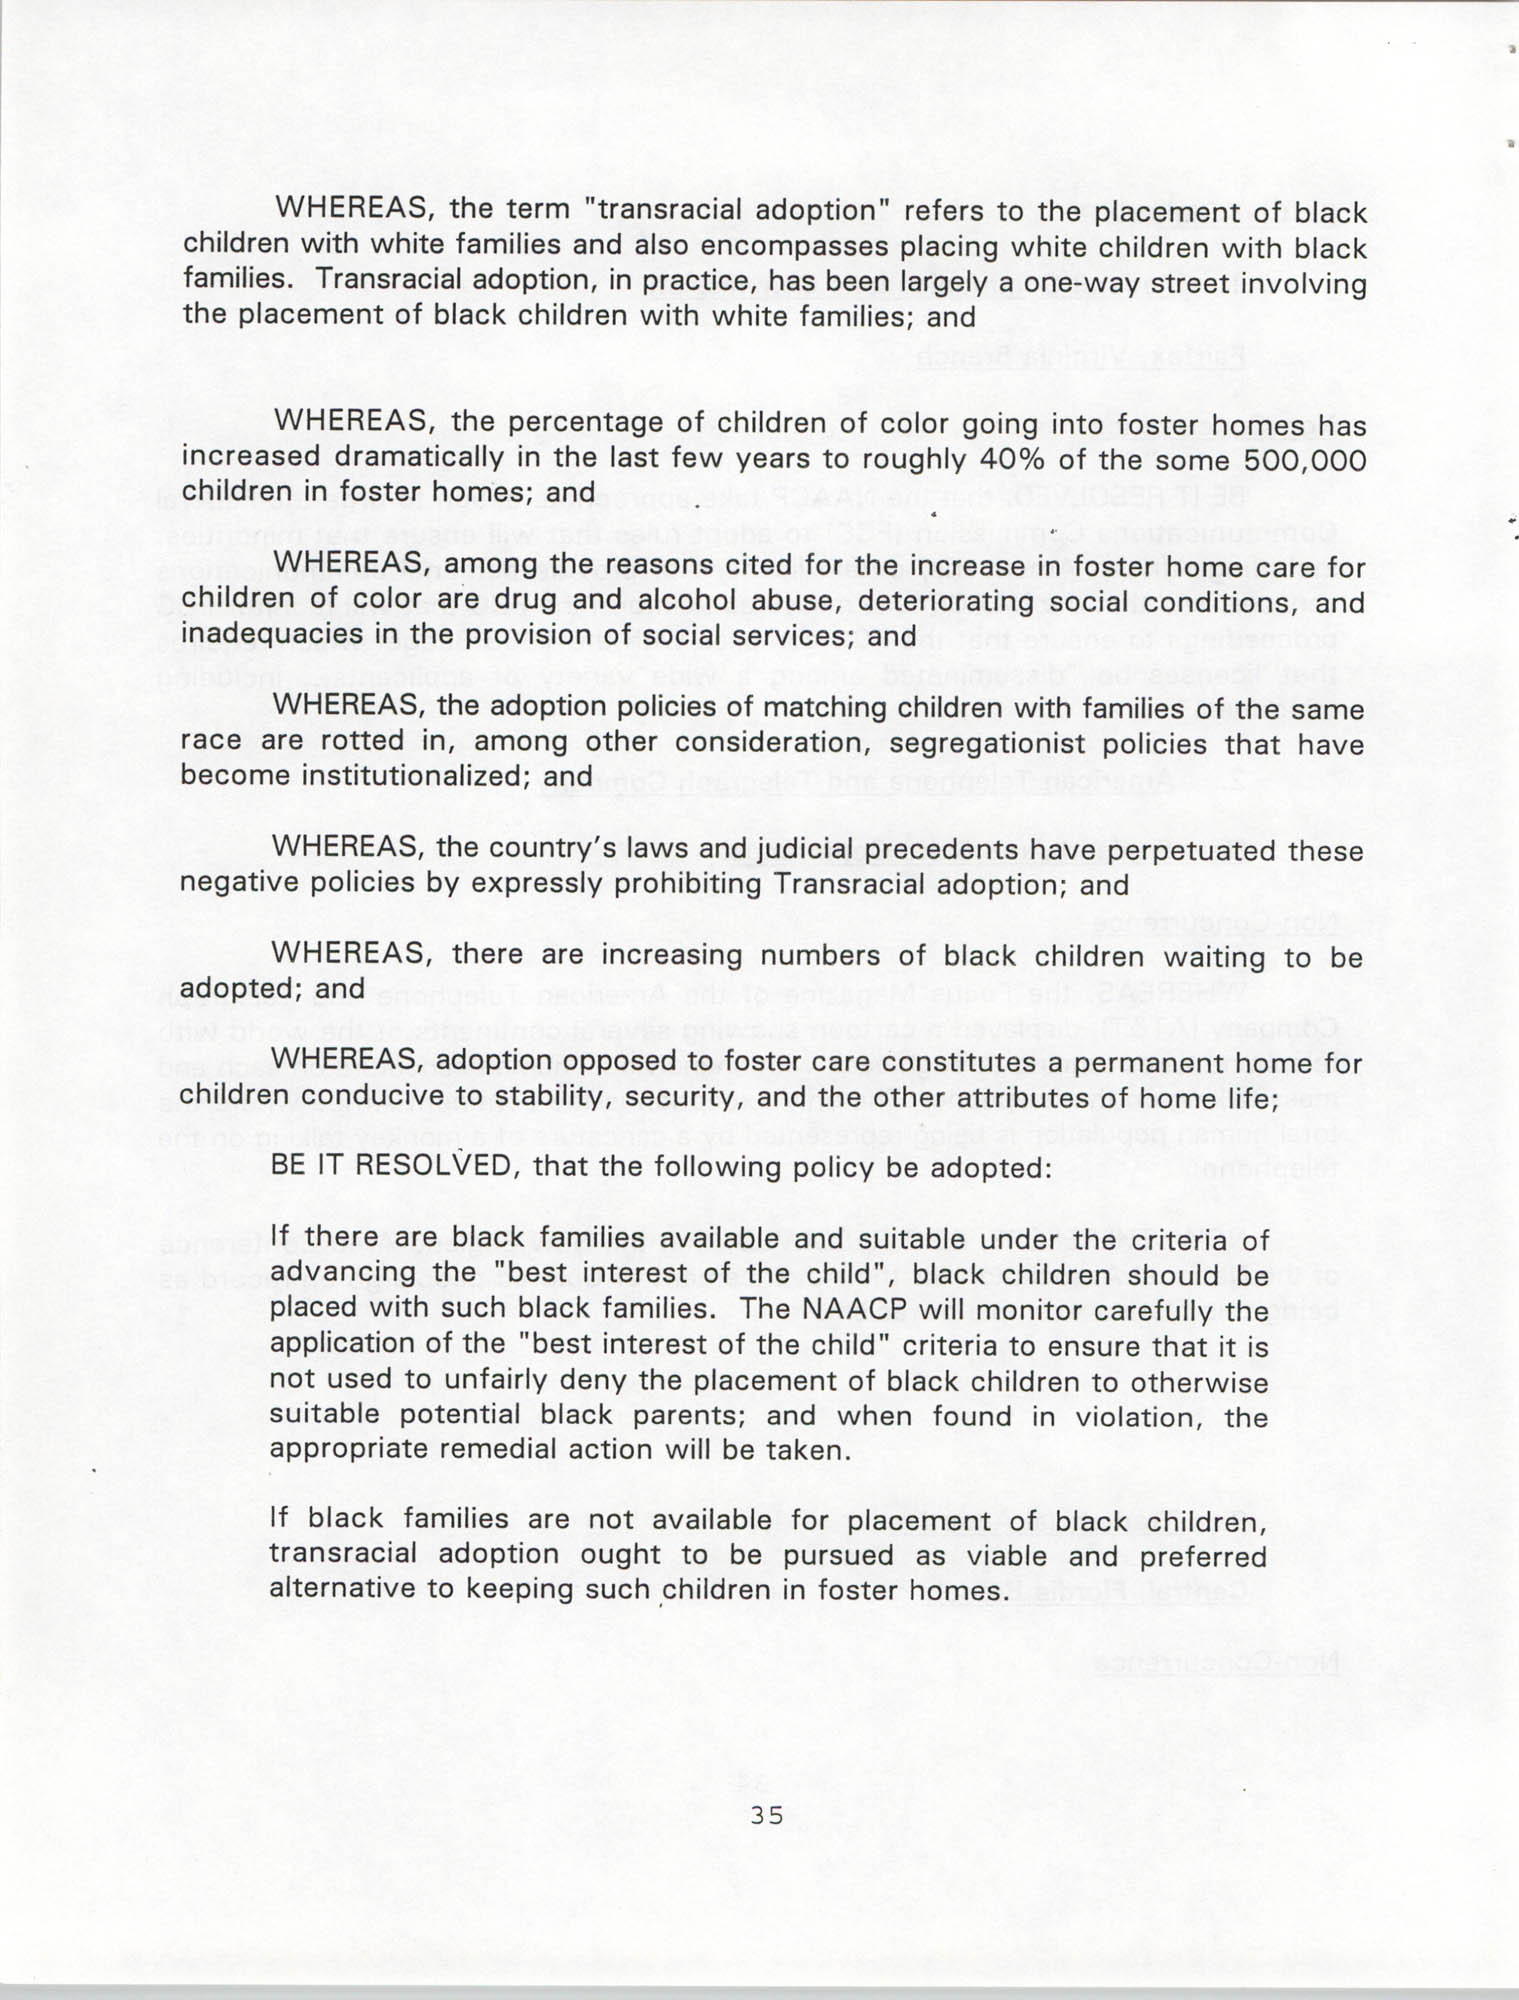 Resolutions Submitted Under Article X, Section 2 of the Constitution of the NAACP, 1994, Page 35